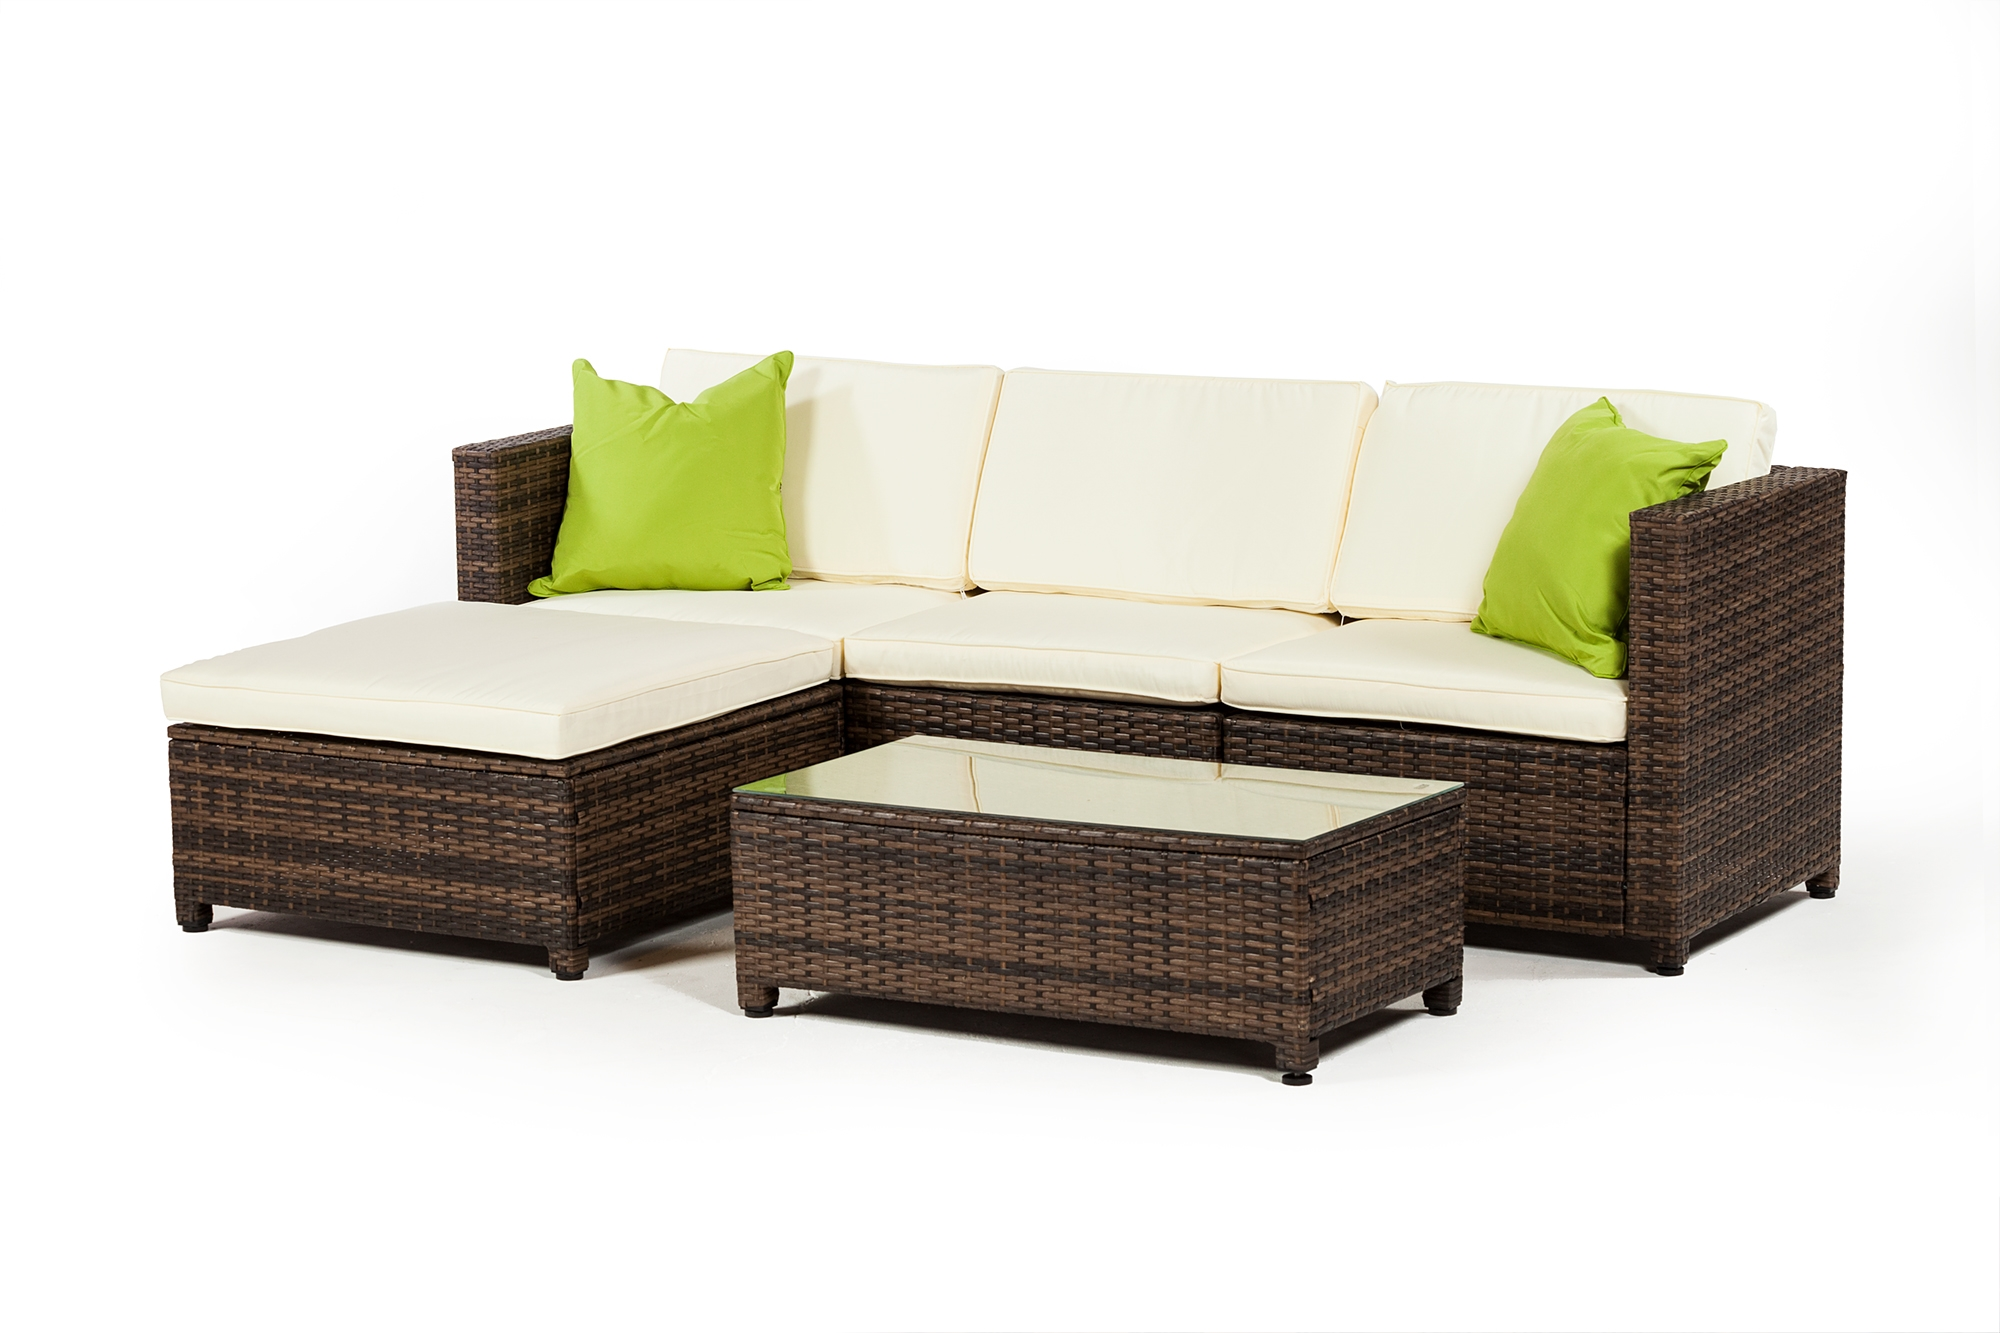 Outdoor Sofa Rattan Outdoor Furniture 3 Piece Set With Ottoman In Grey Rattan